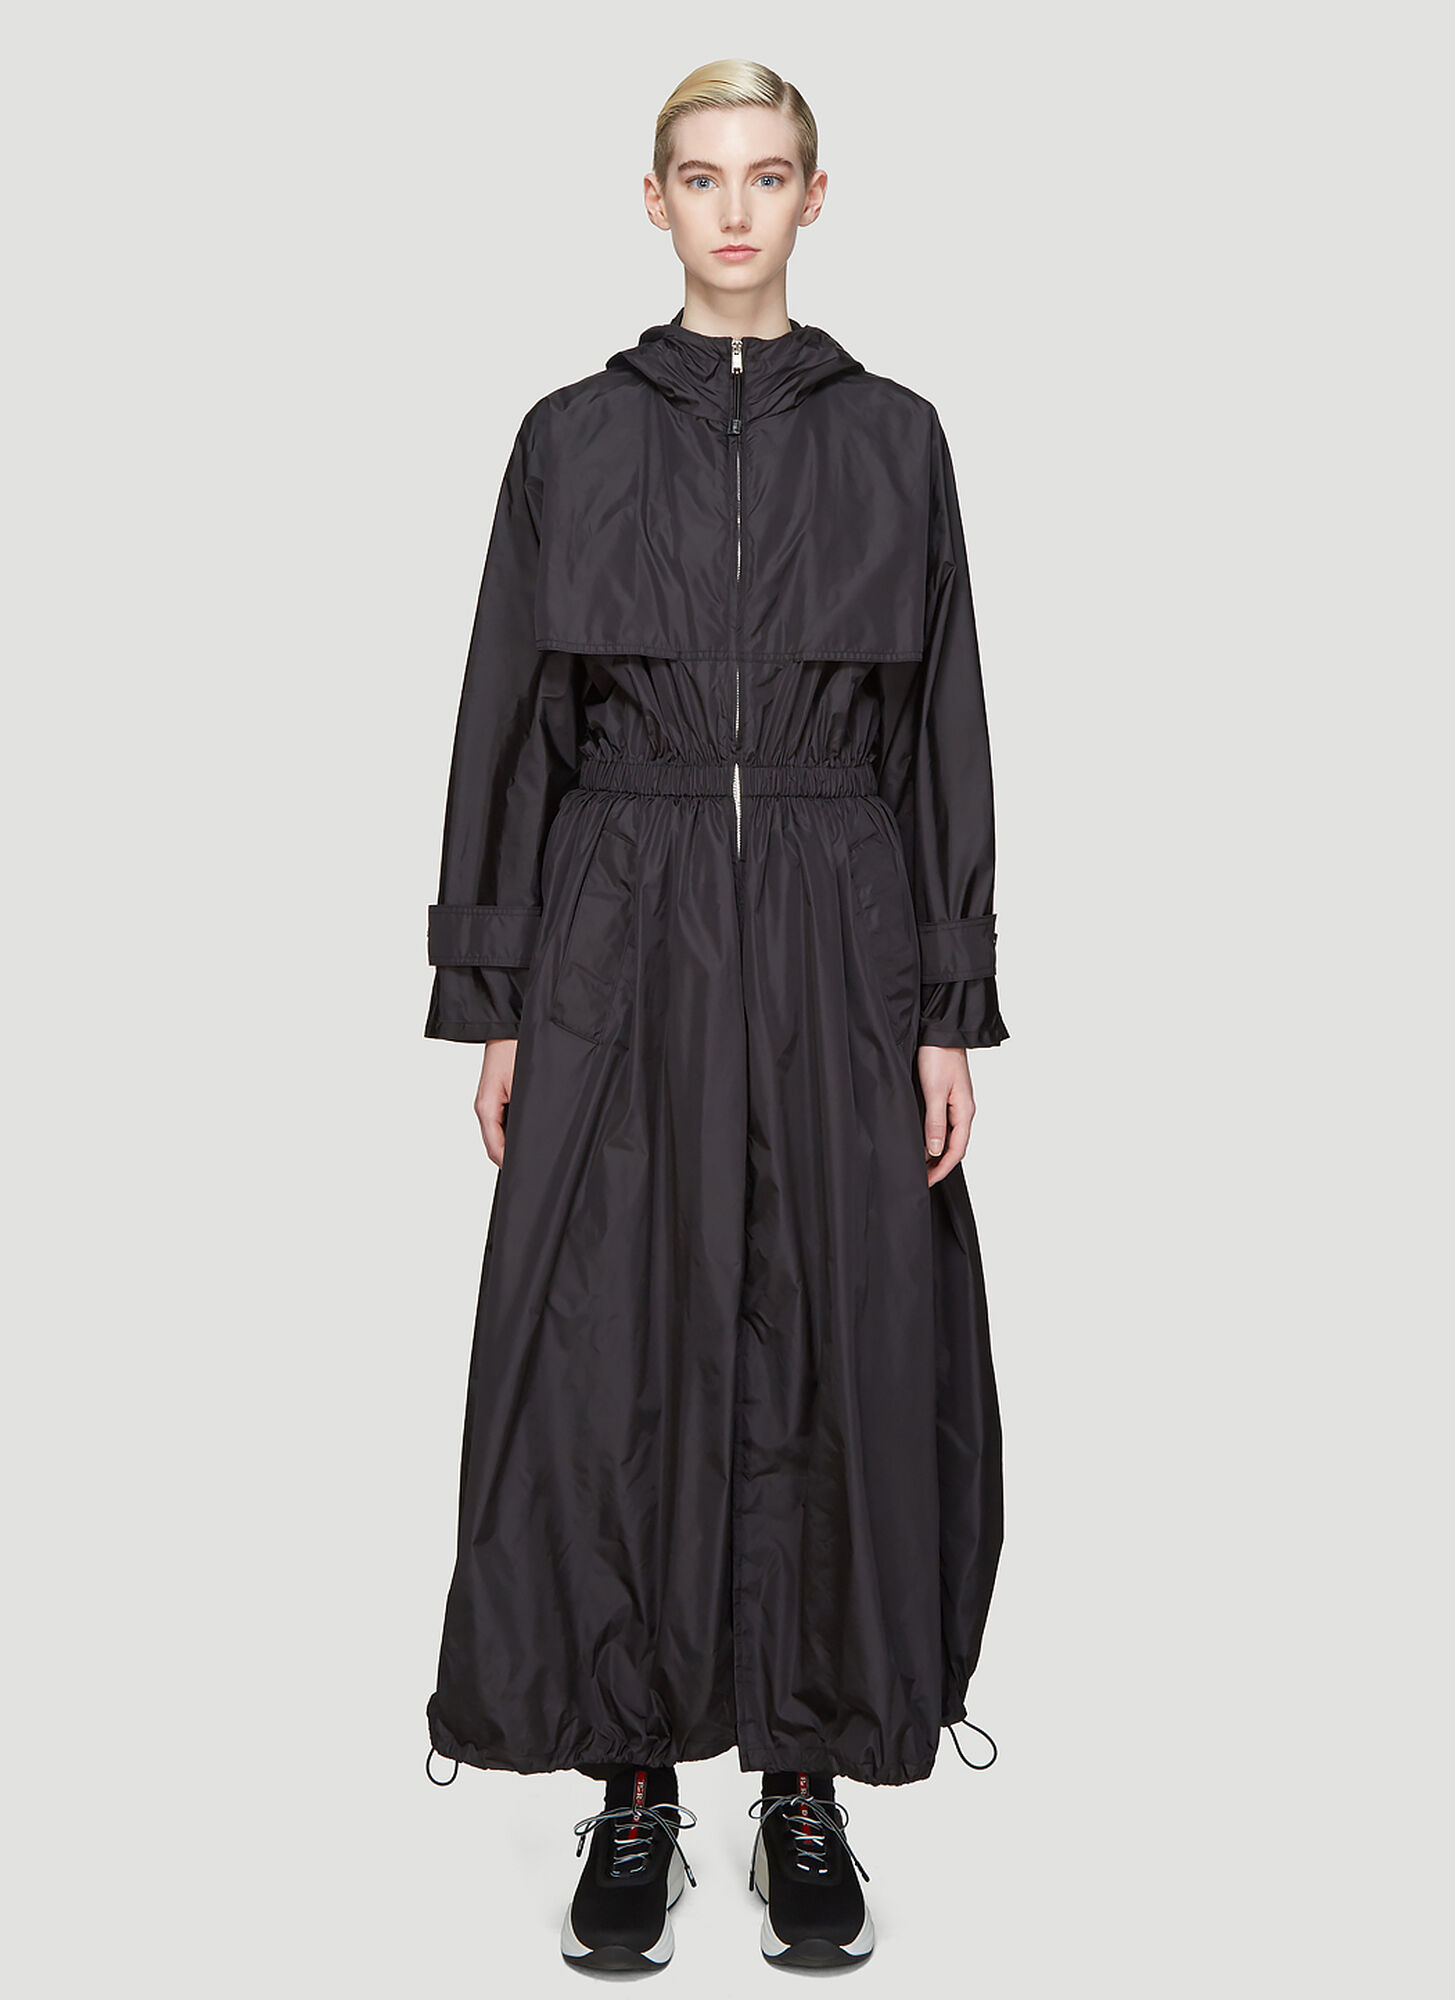 Prada Hooded Nylon Parachute Coat in Black